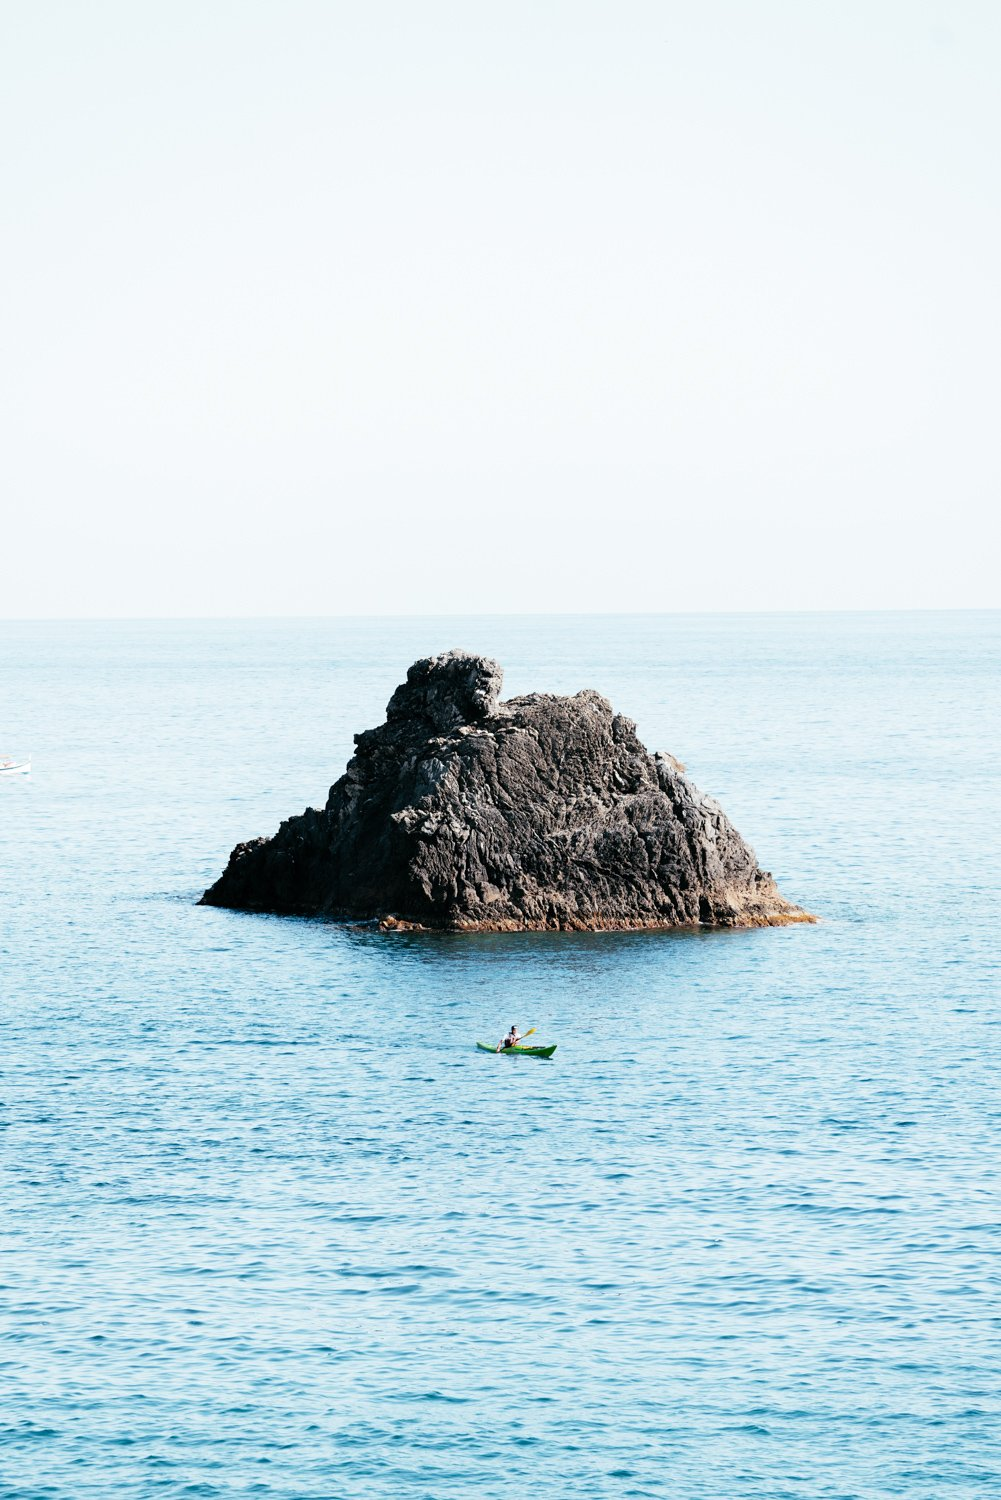 Man paddling in kayak at big rock in blue ocean in Cinque Terre